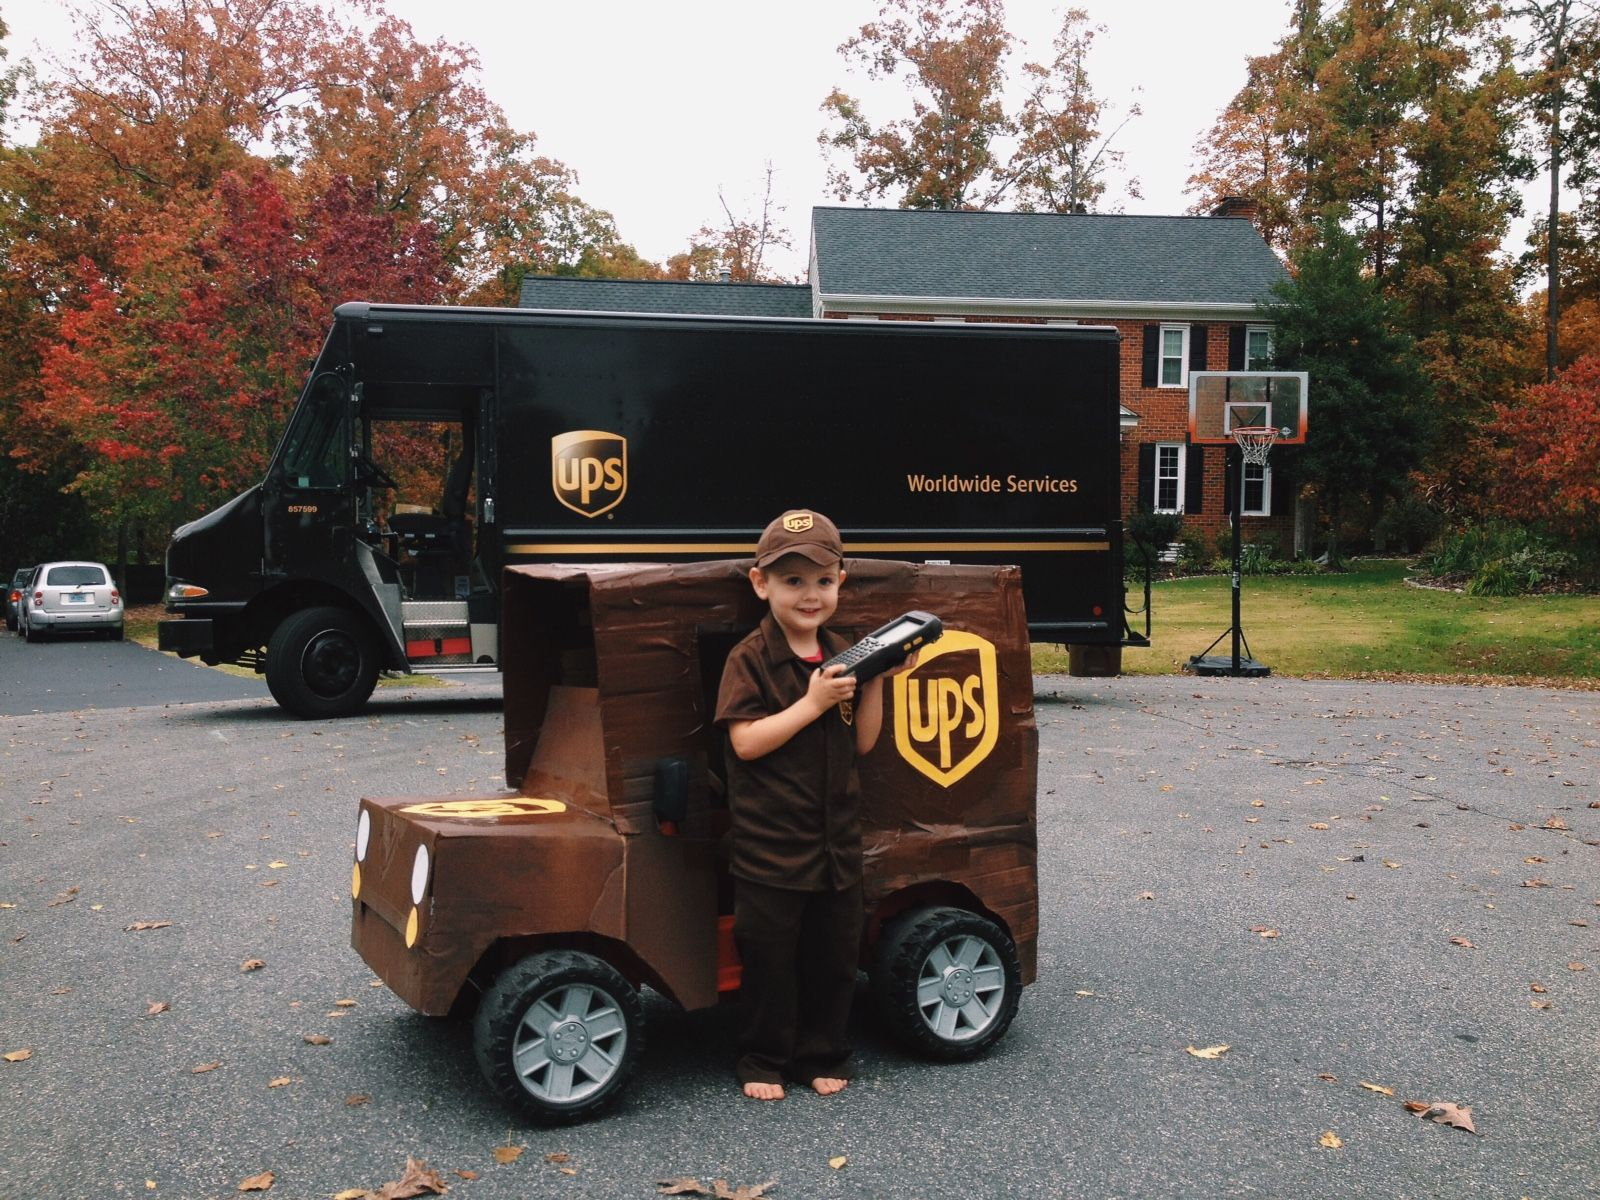 Turned his Power Wheels Jeep into a UPS truck for Halloween